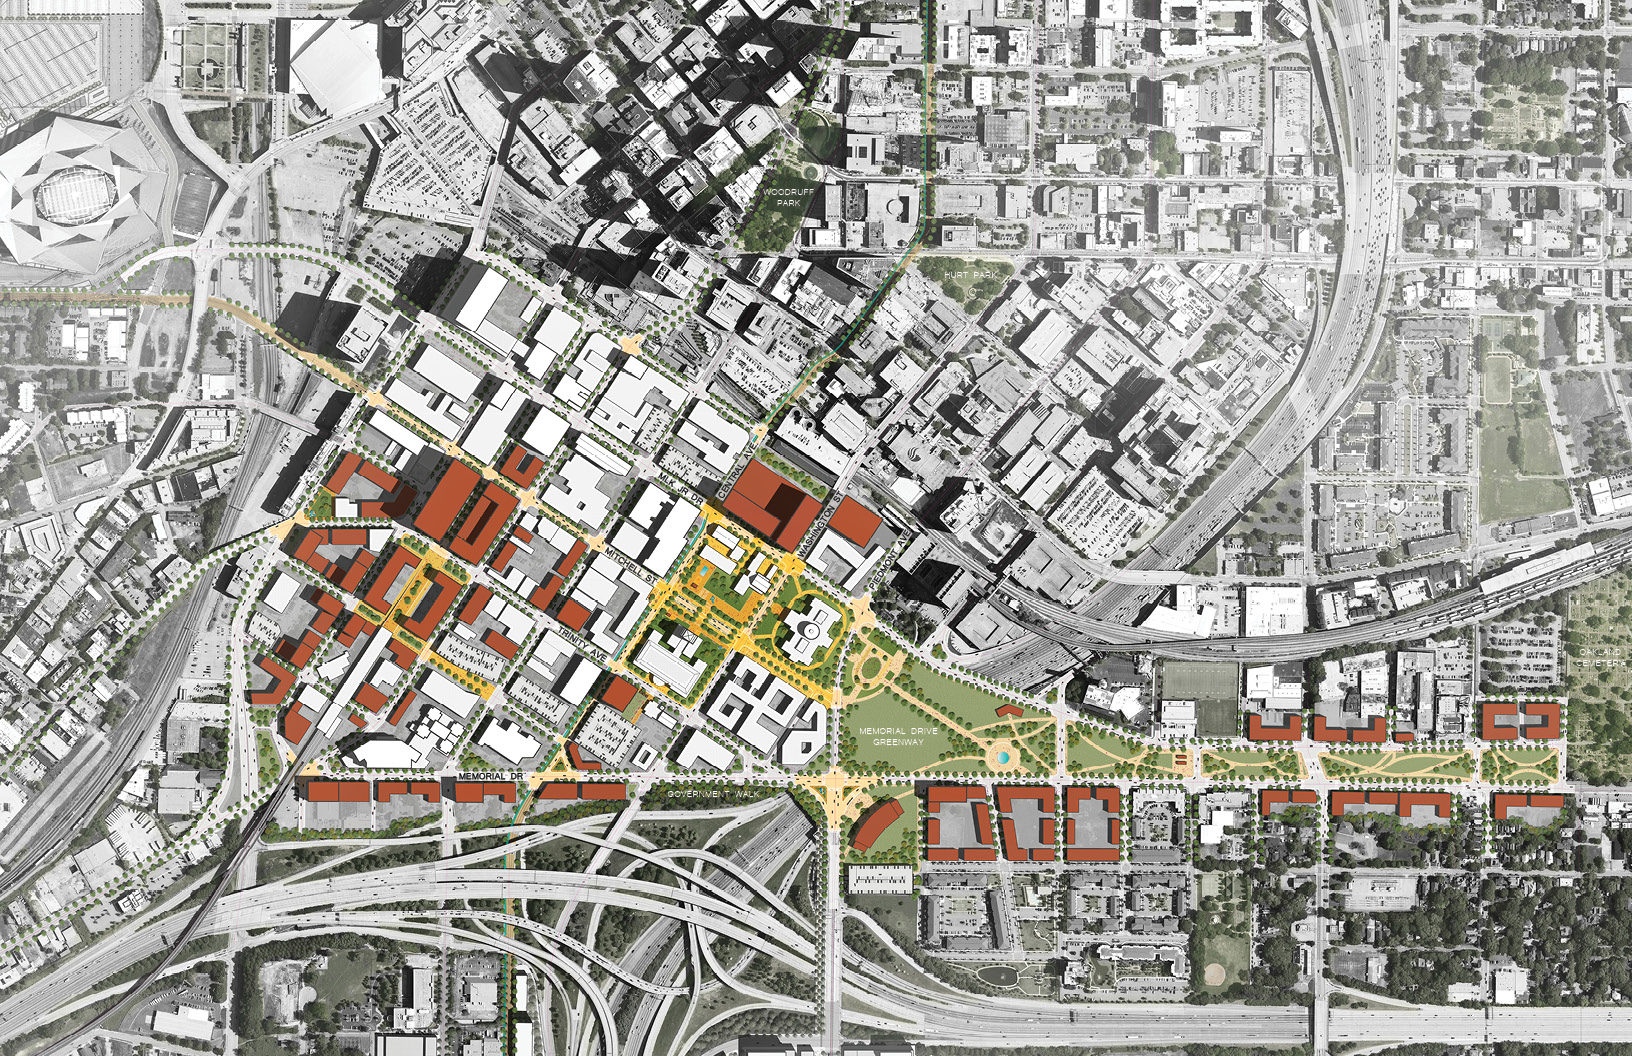 Government District master plan